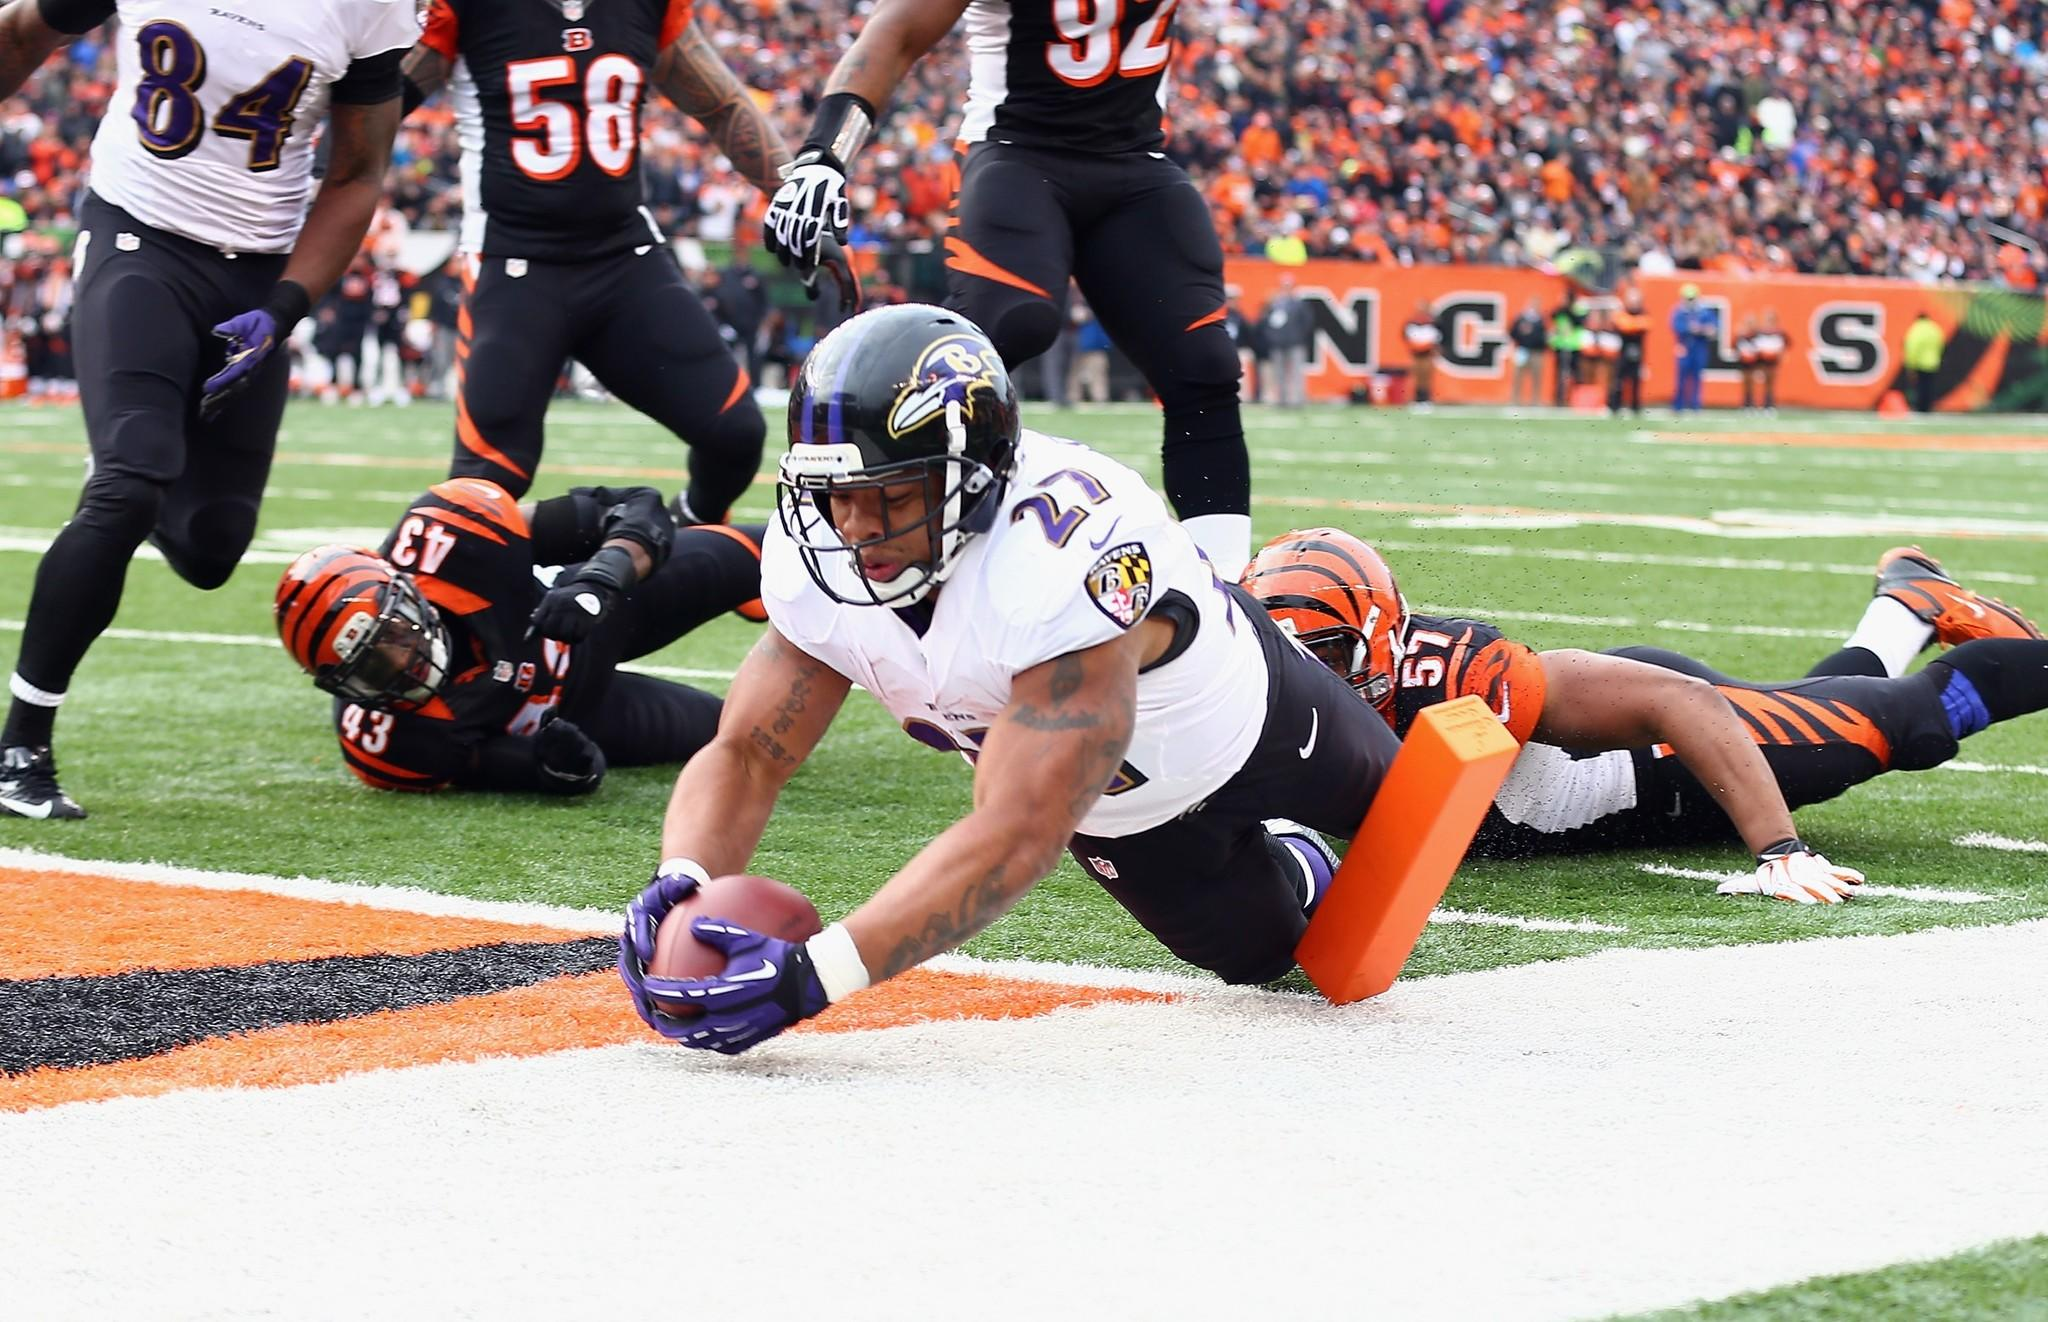 Ravens running back Ray Rice dives for the two-point conversion in the third quarter to tie the score at 17-17 against the Cincinnati Bengals.